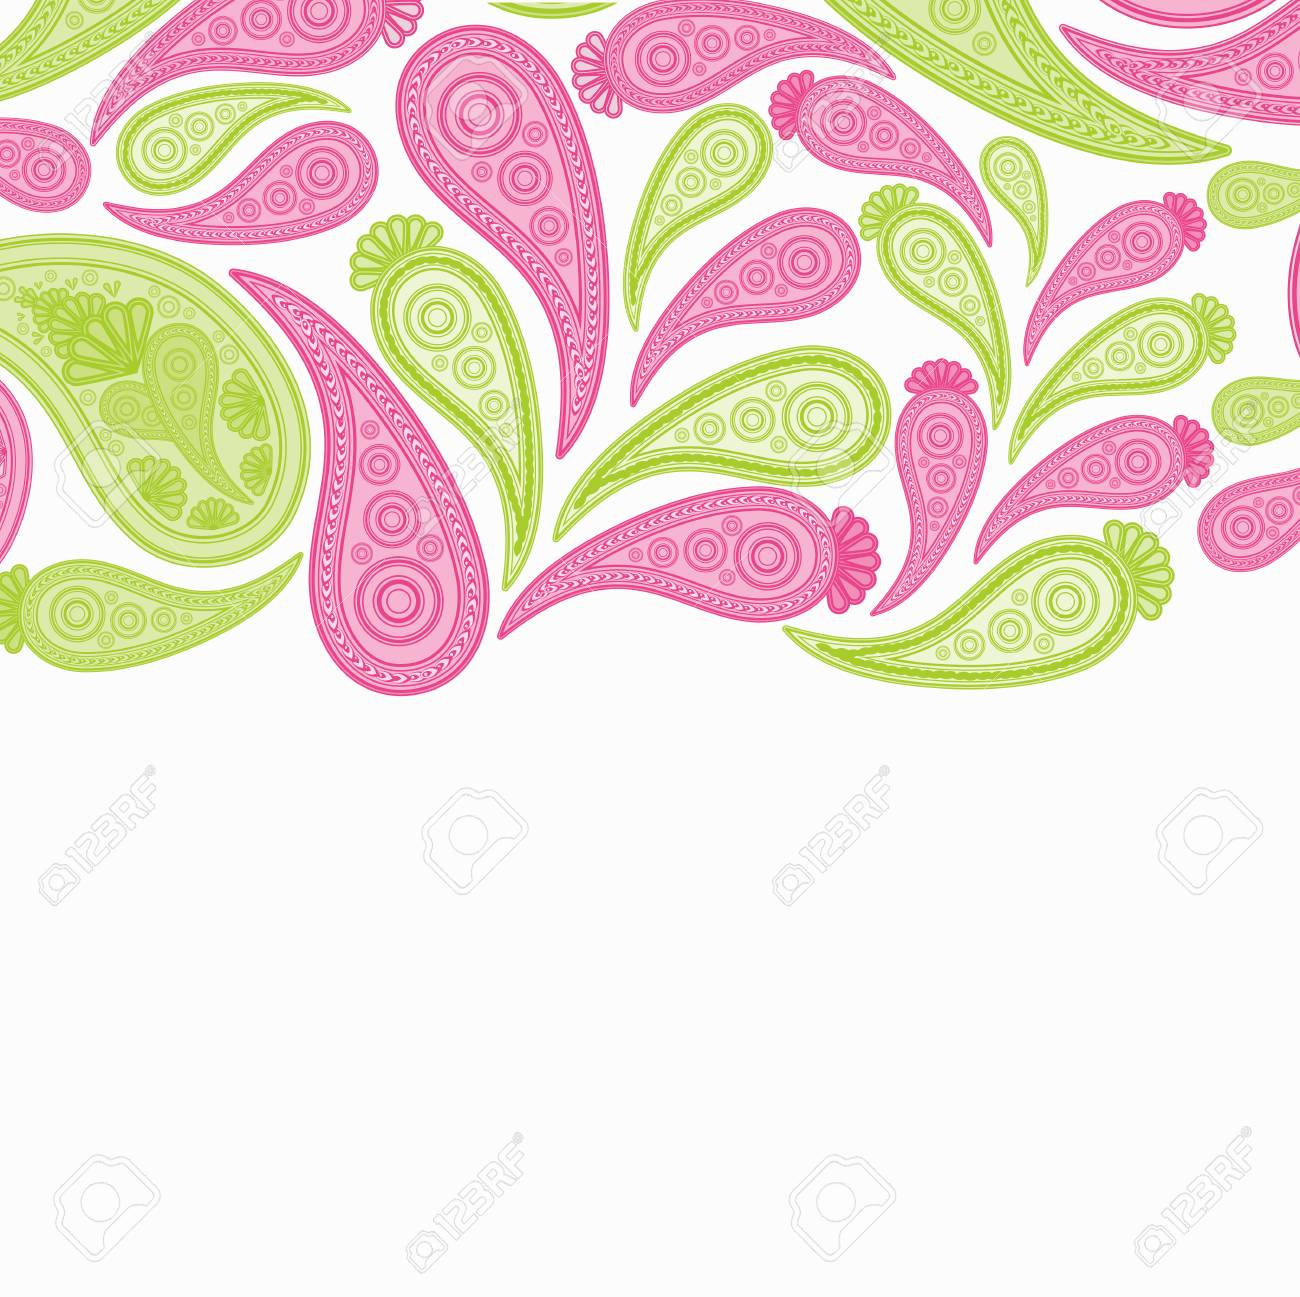 Paisley Pink And Green Design Pattern Royalty Free Cliparts Vectors And Stock Illustration Image 85619430